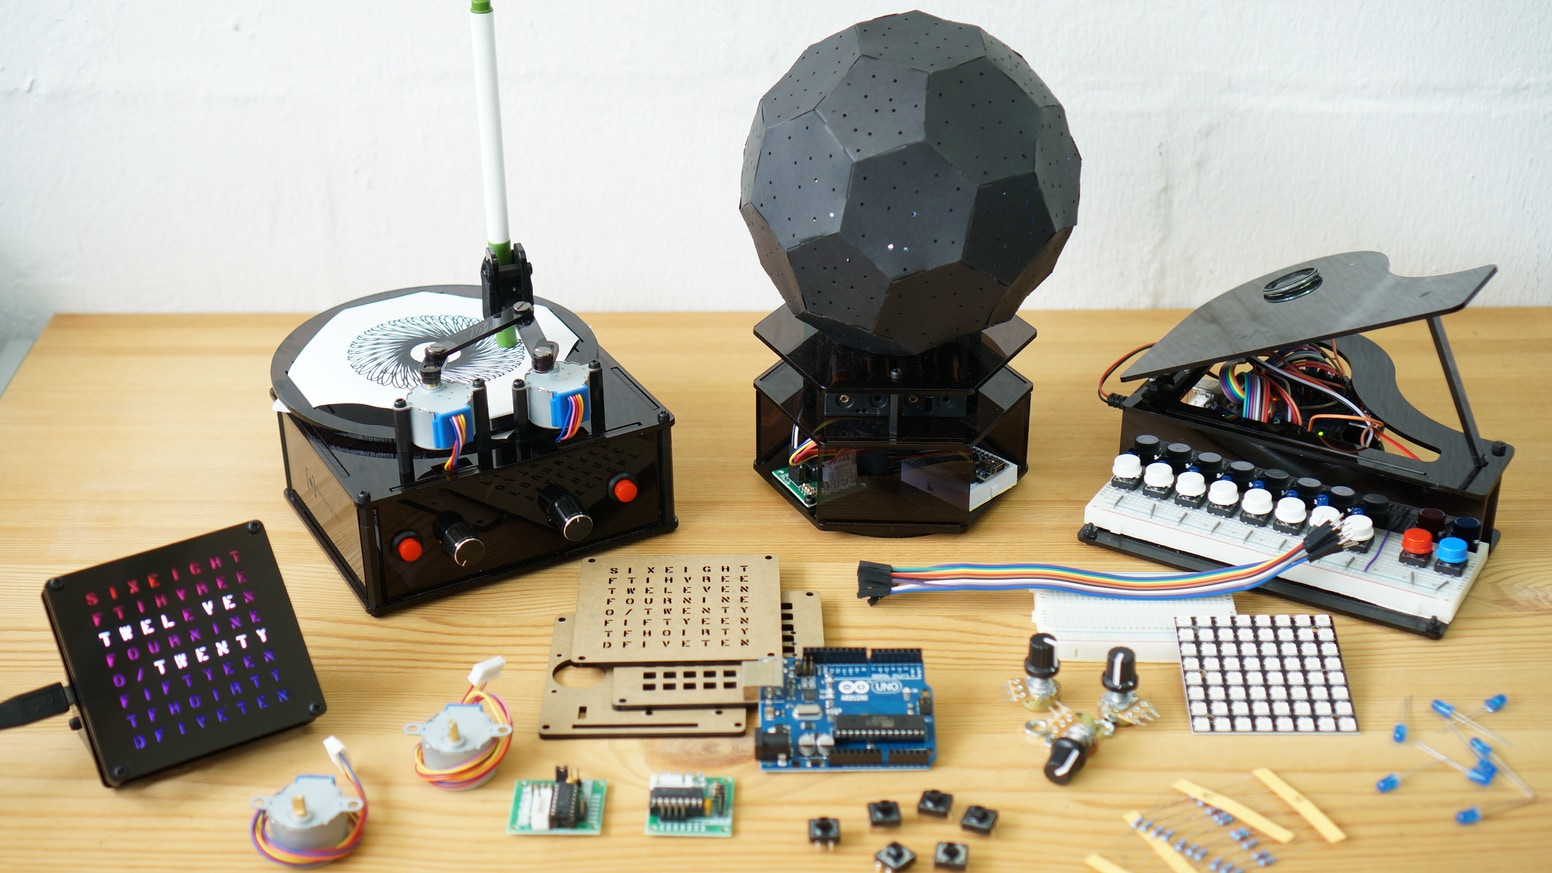 Thinkcrate Diy Electronics Project Kits For Geeks By